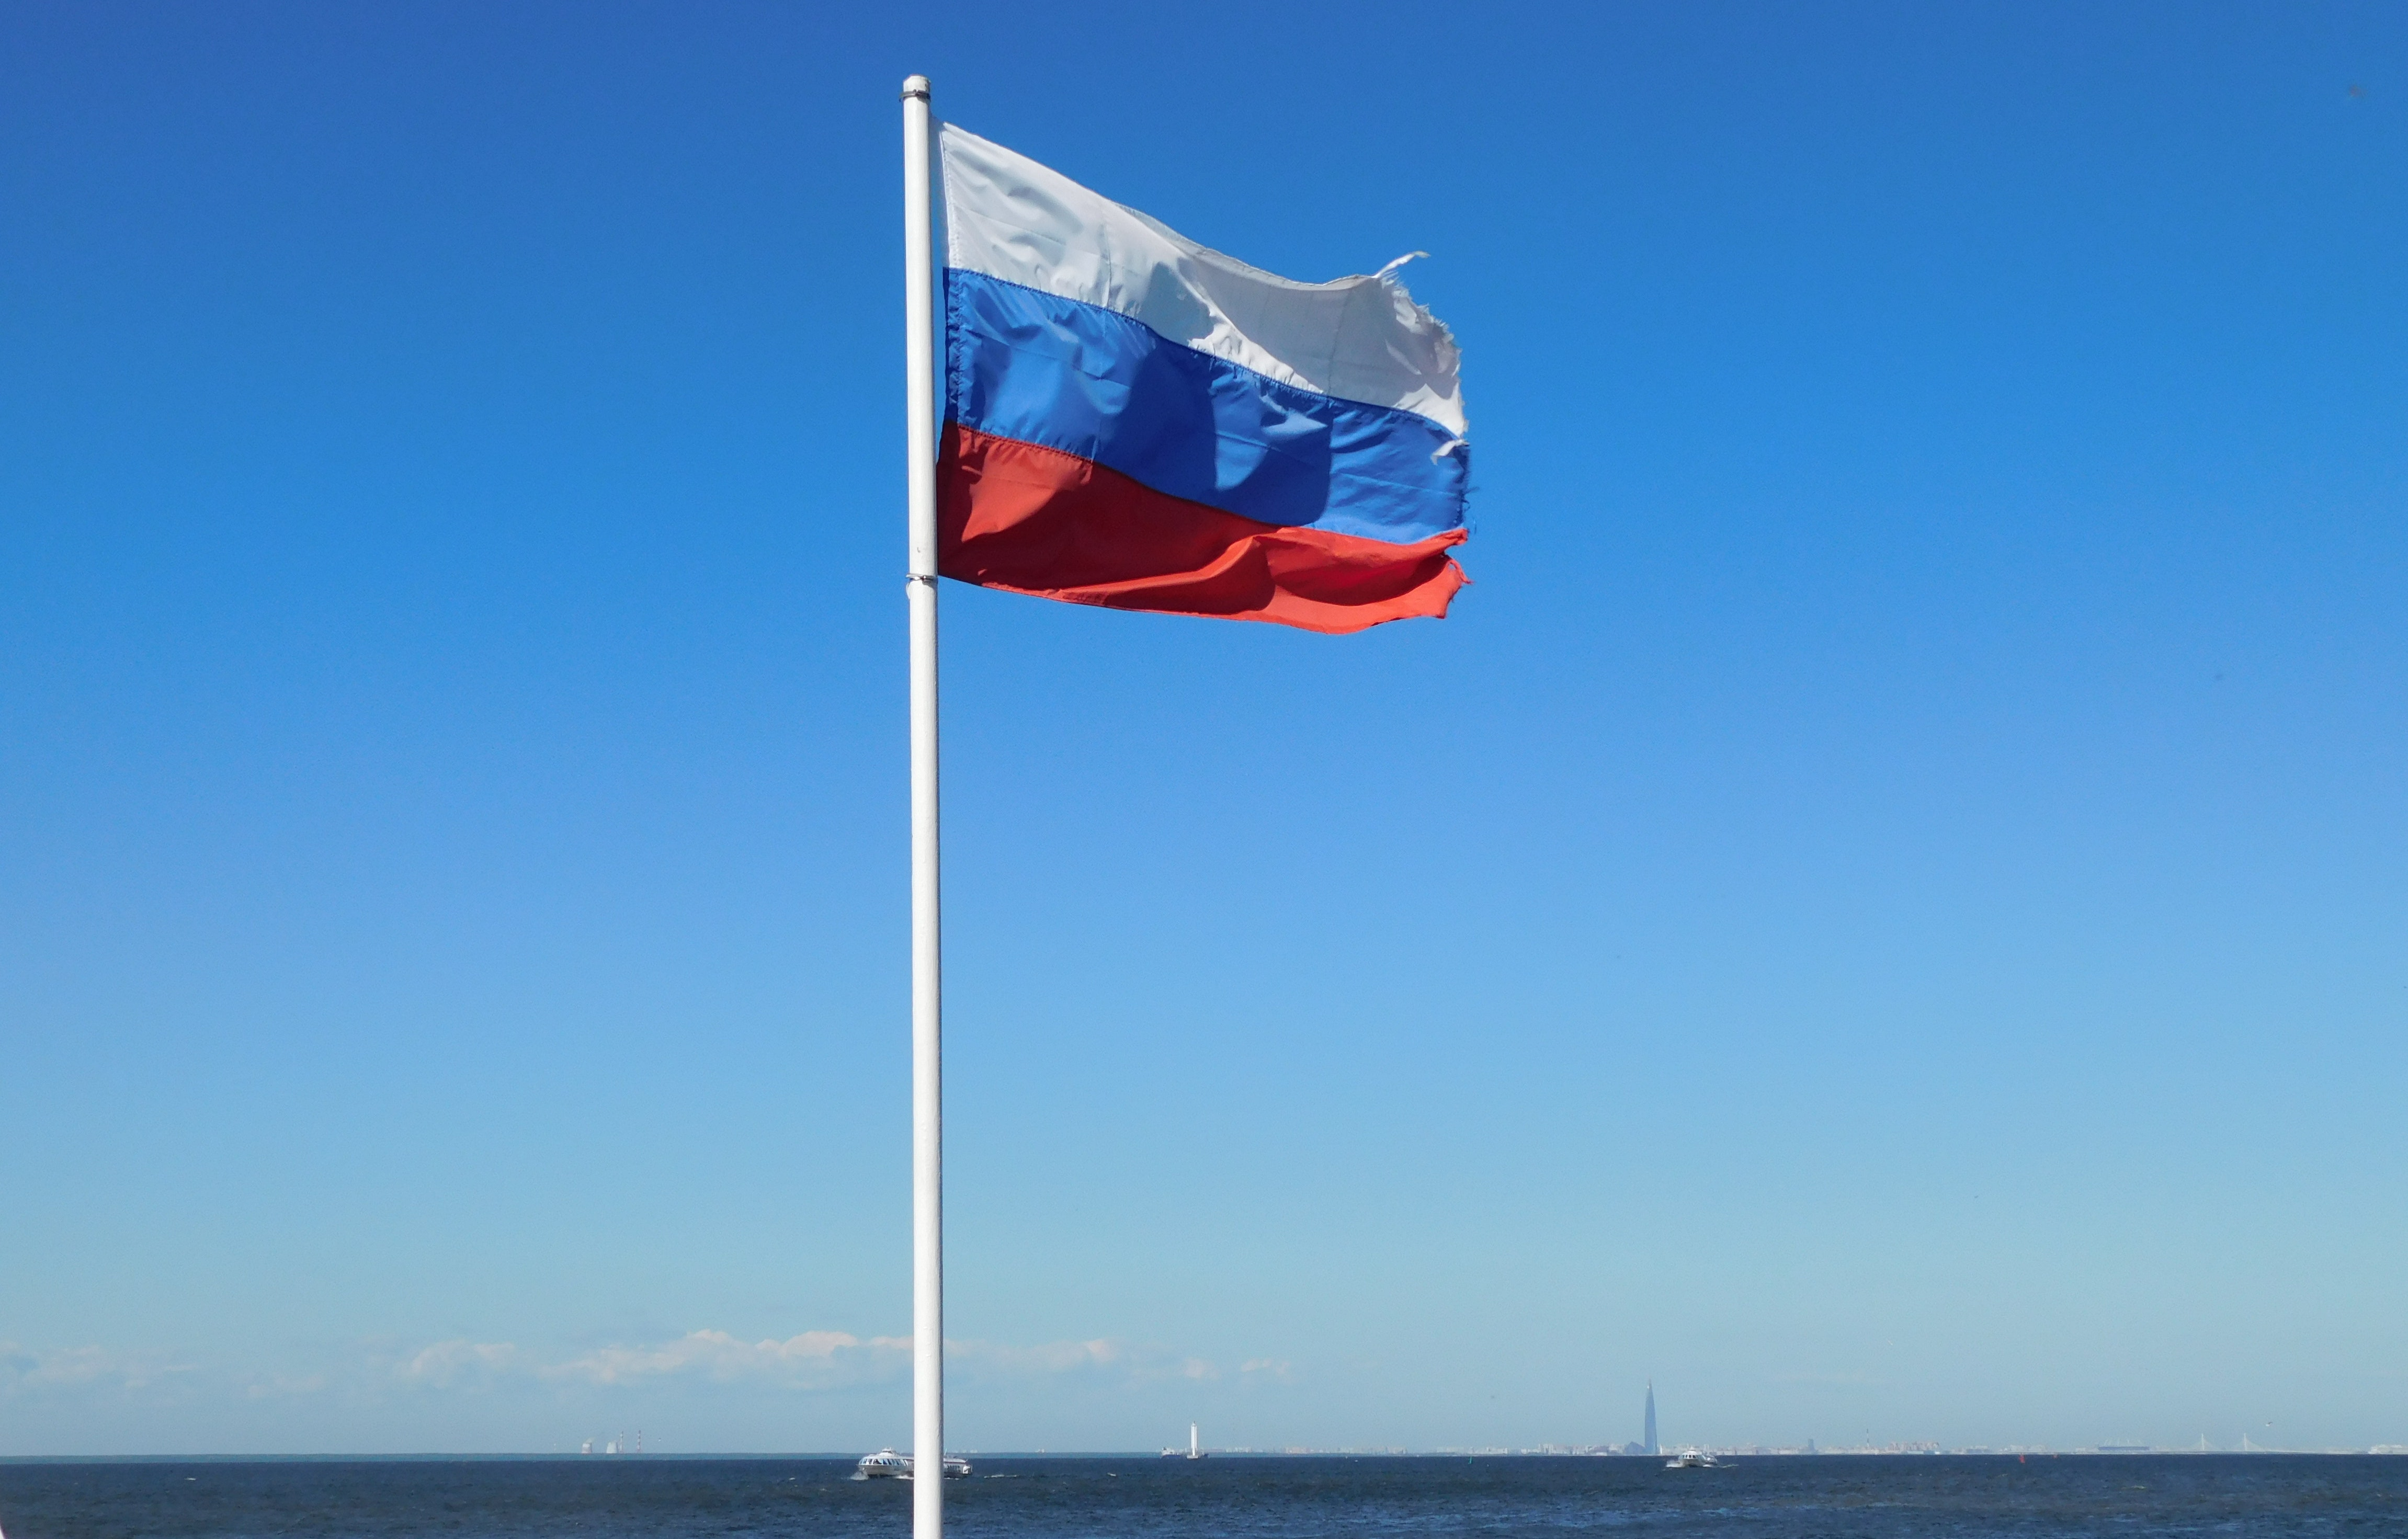 Russia to enter 4 surface ships to service by the new year